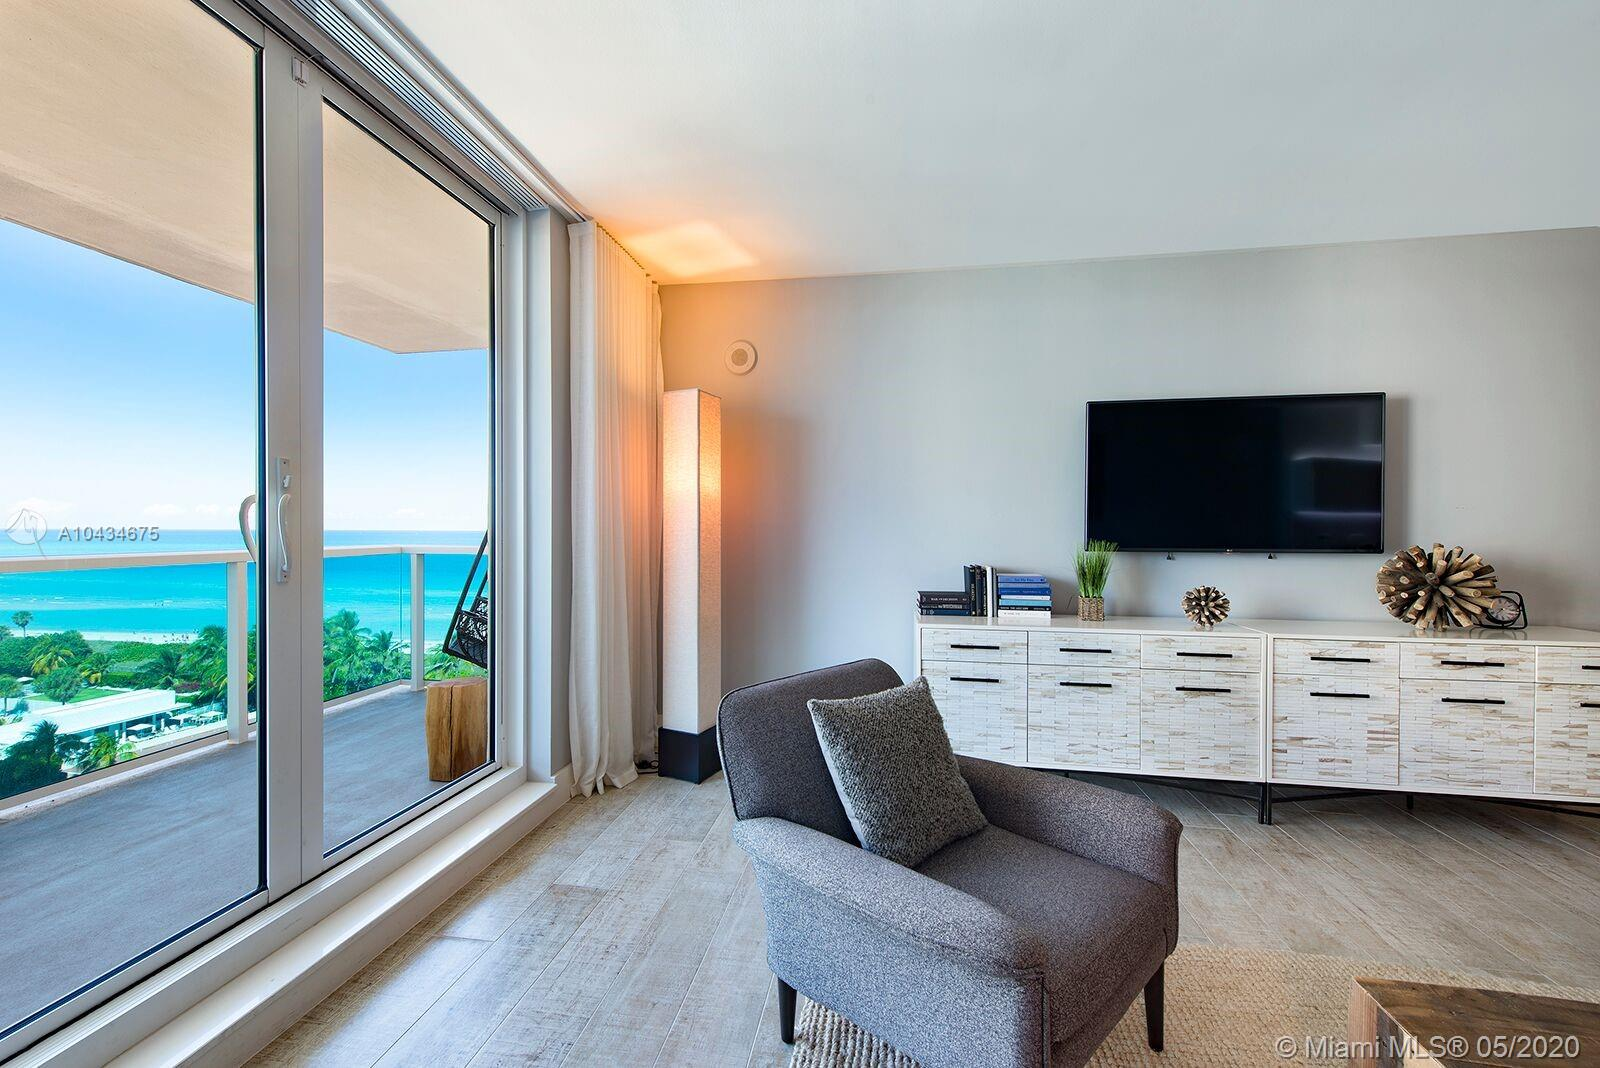 Beautifully finished and furnished, 970 square feet 1 bed/1.5 bath at the new 1 Hotel + Homes. Highly desirable 13 line w/wide open ocean views. Great amenities including 4 pools, valet, private owner's lobby separate from hotel entrance and the best restaurants in South Beach.